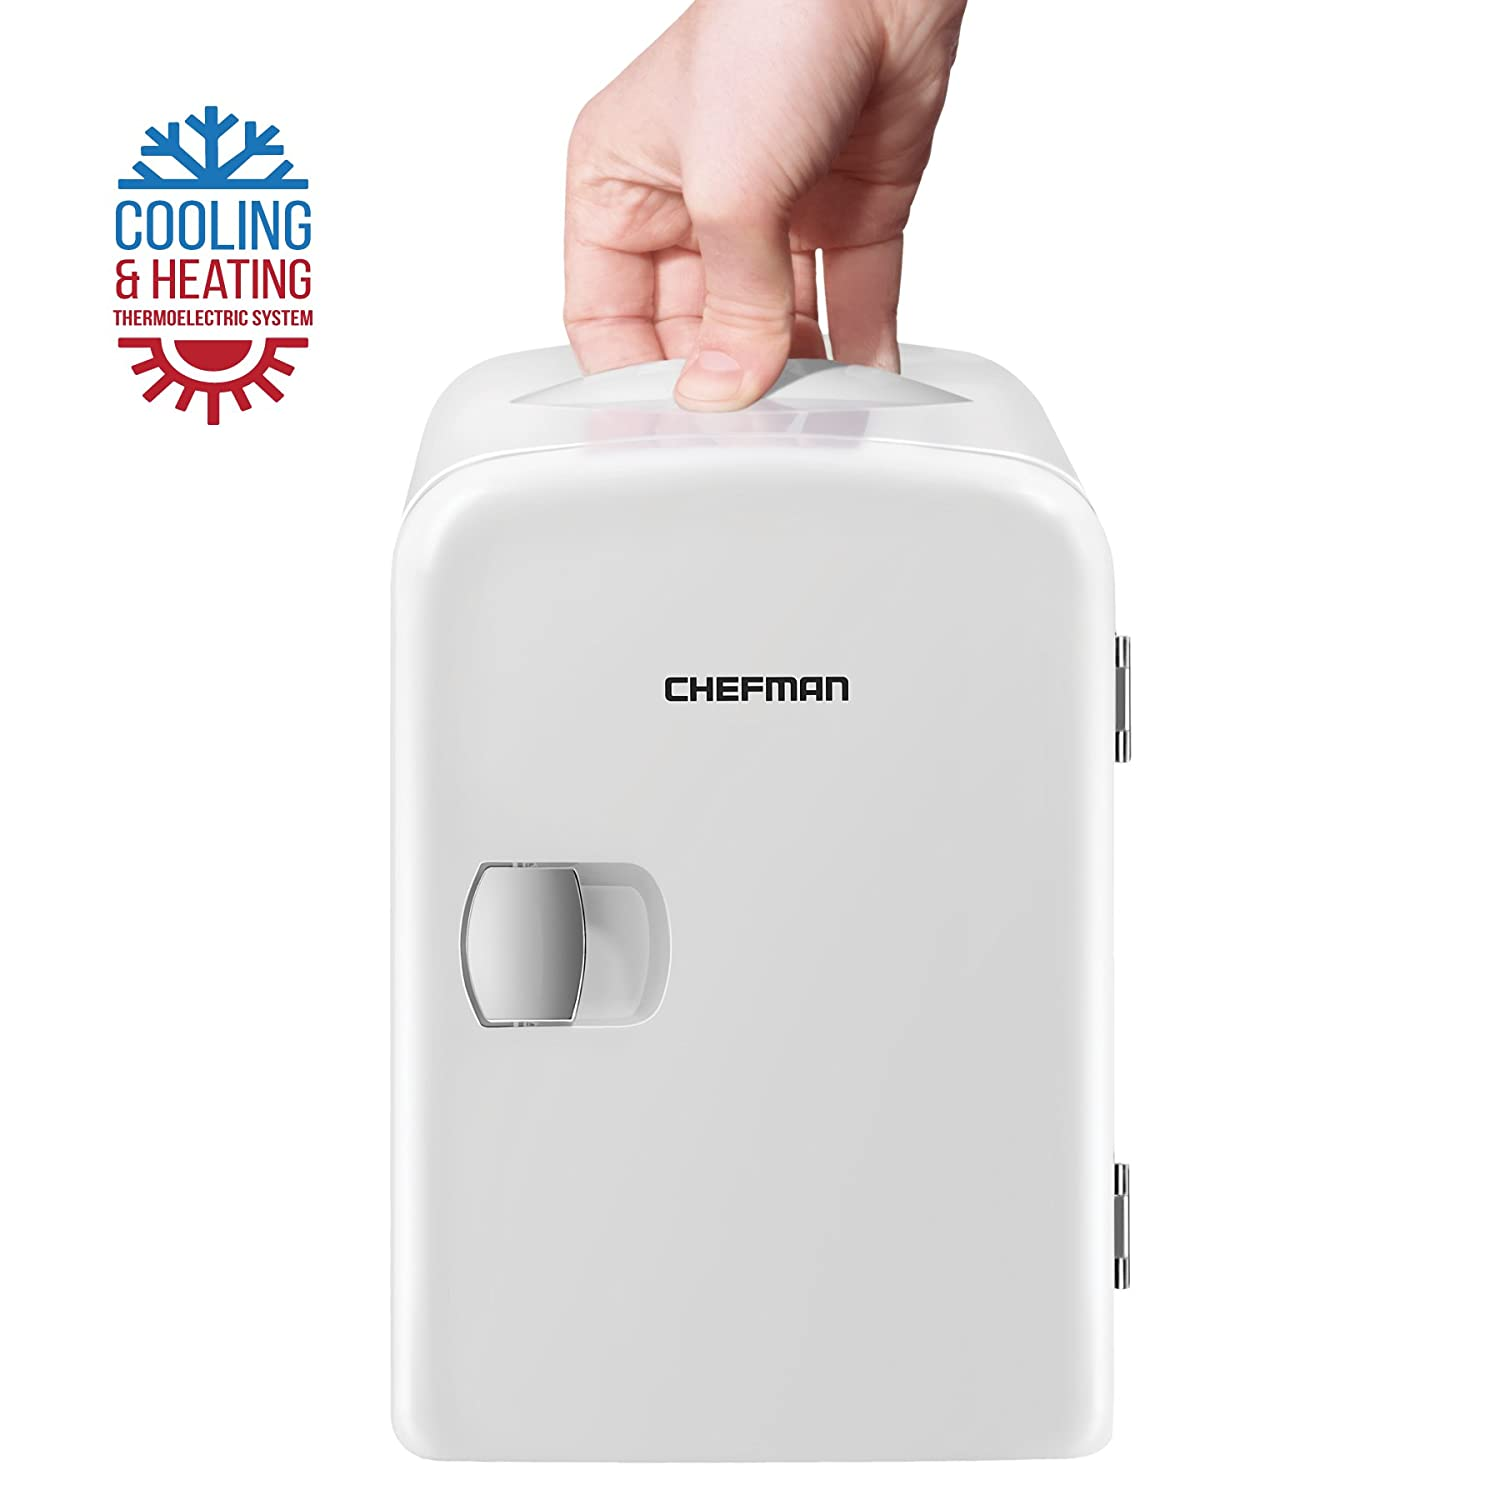 Chefman Portable Compact Personal Fridge Cools & Heats, 4 Liter Capacity Chills Six 12 Oz Cans, 100 Percents Freon Free & Eco Friendly, Includes Plugs For Home Outlet & 12 V Car Charger  Rj48 White by Chefman